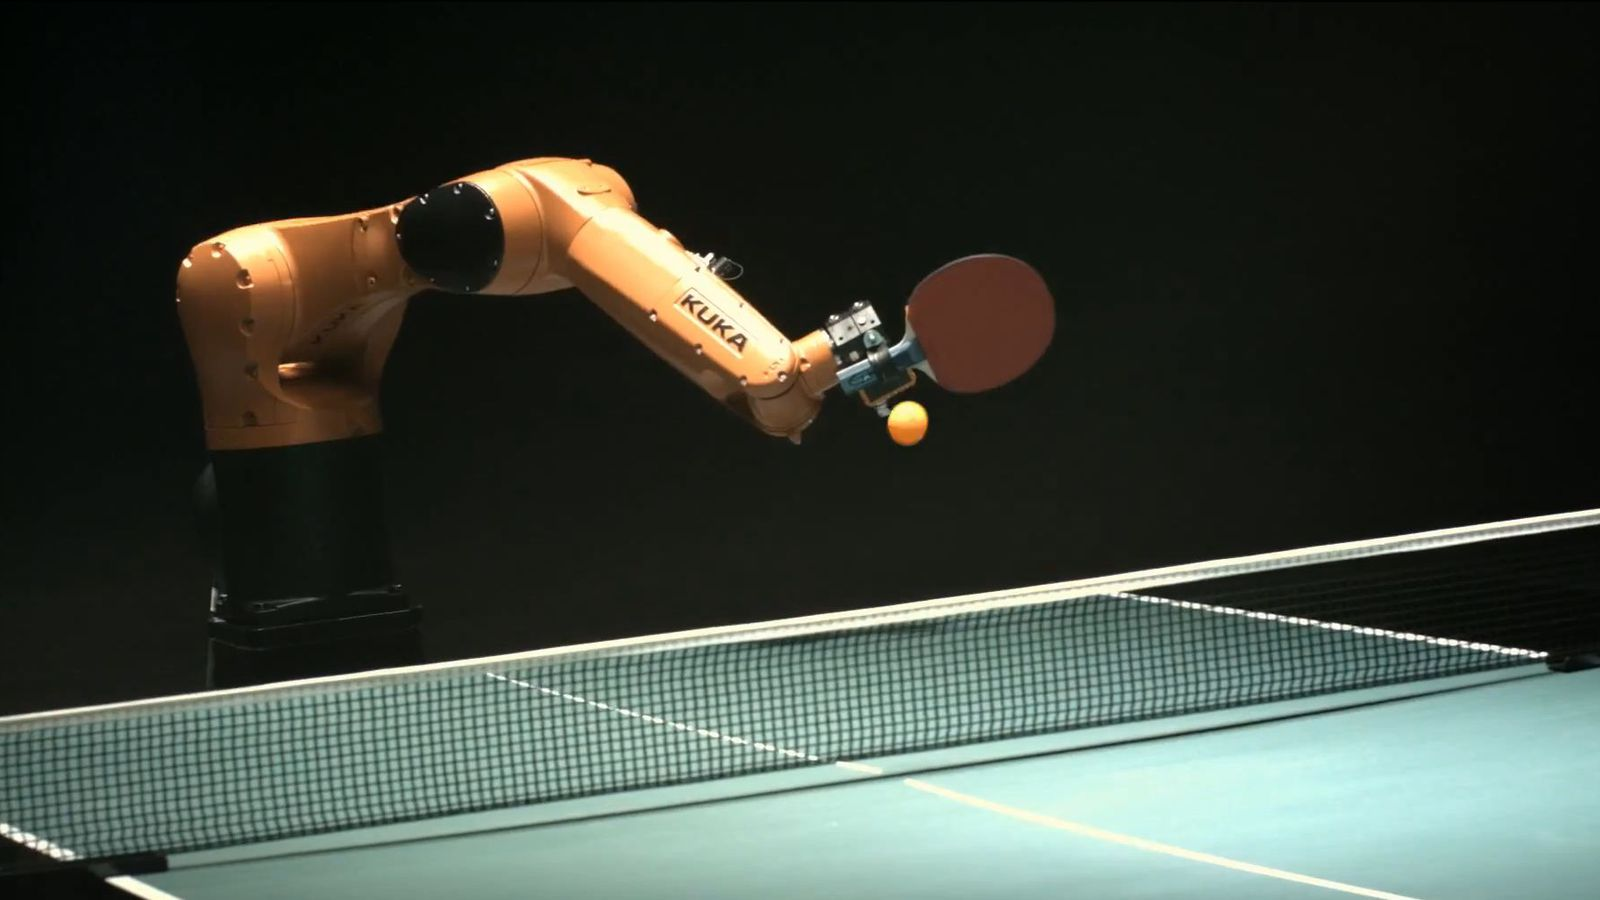 Everybody Loses In Ping Pong Match Between Robot And Man